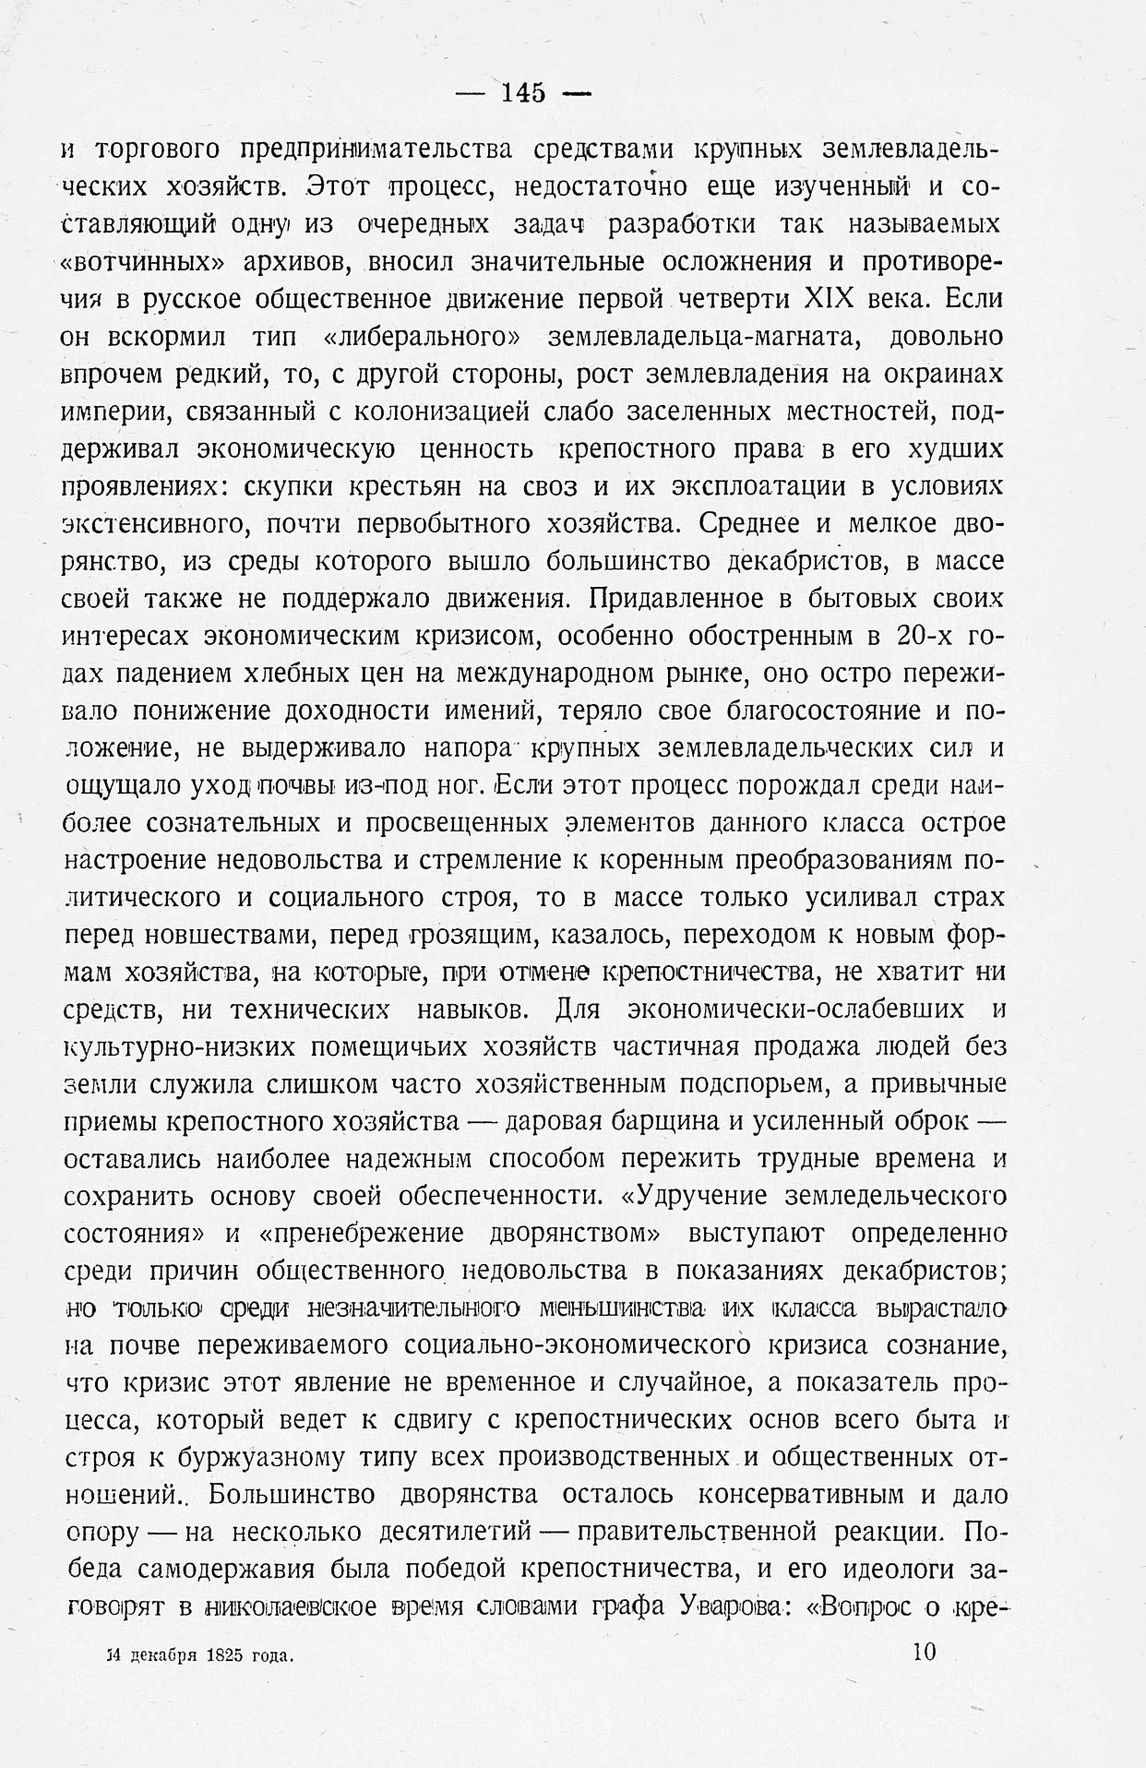 http://elib.shpl.ru/pages/566042/zooms/7